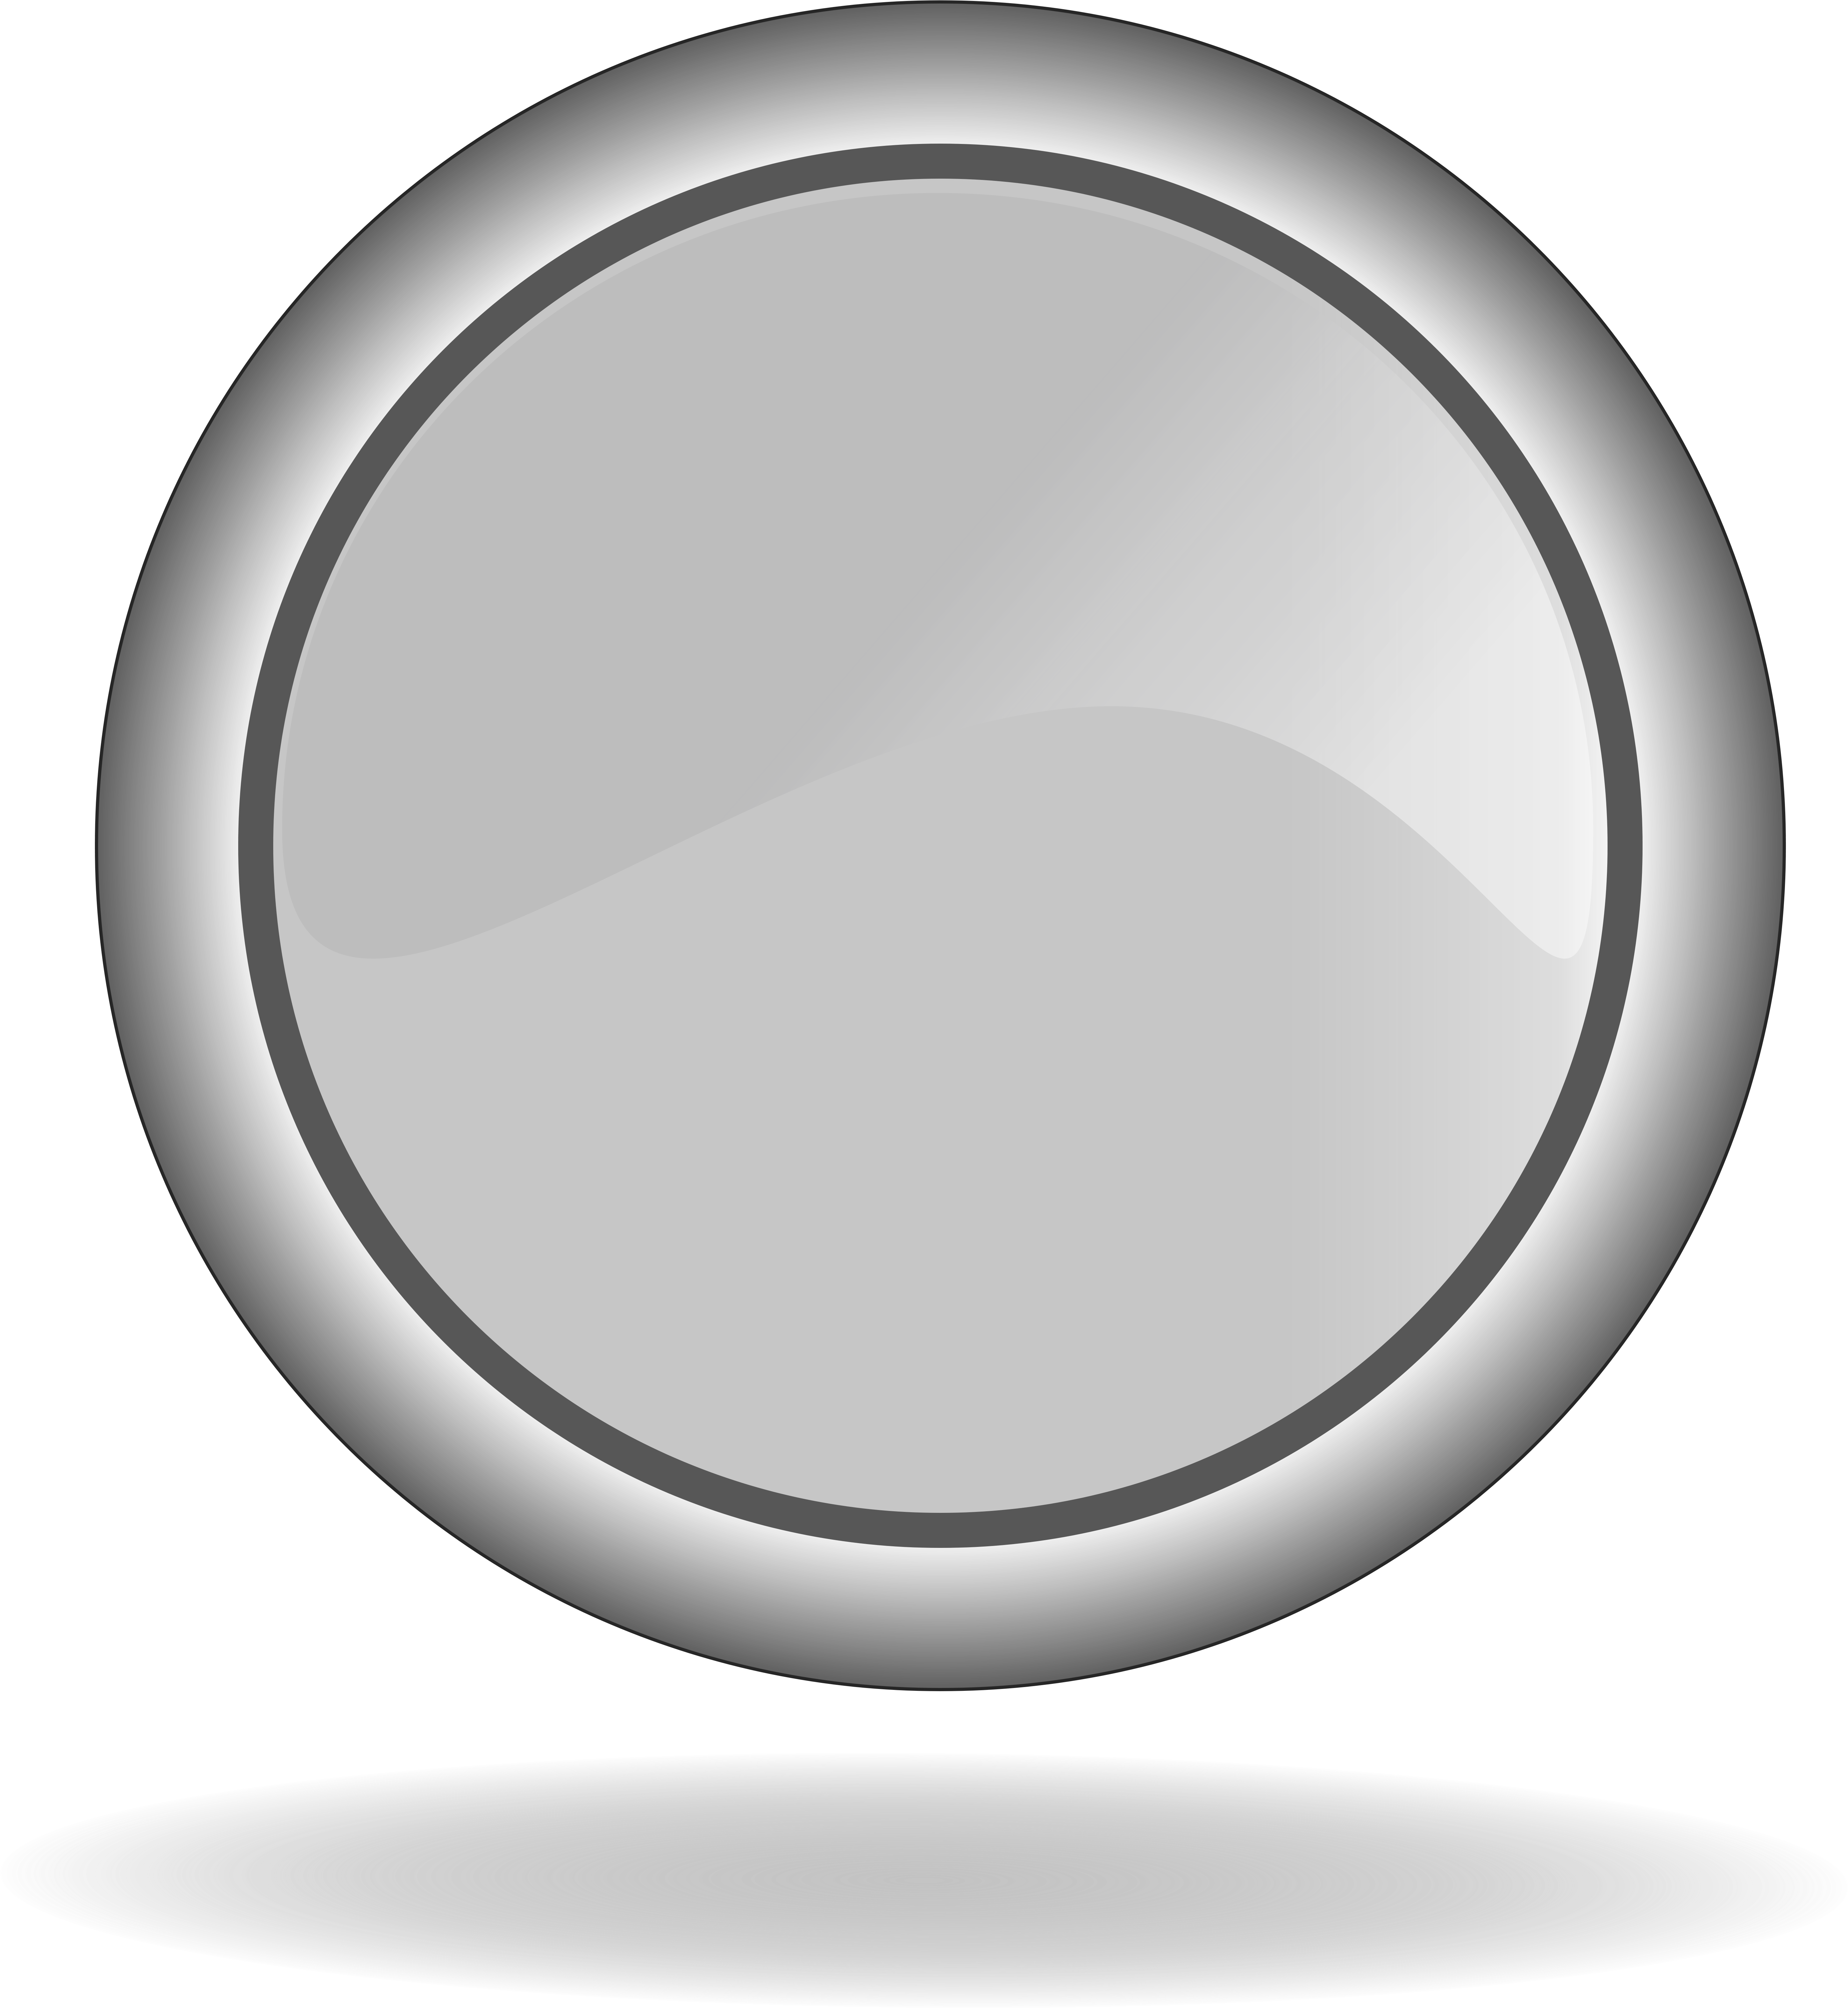 Gray button clipart picture Icon Of The Grey Button Clipart - Circle Button Gray Png ... picture